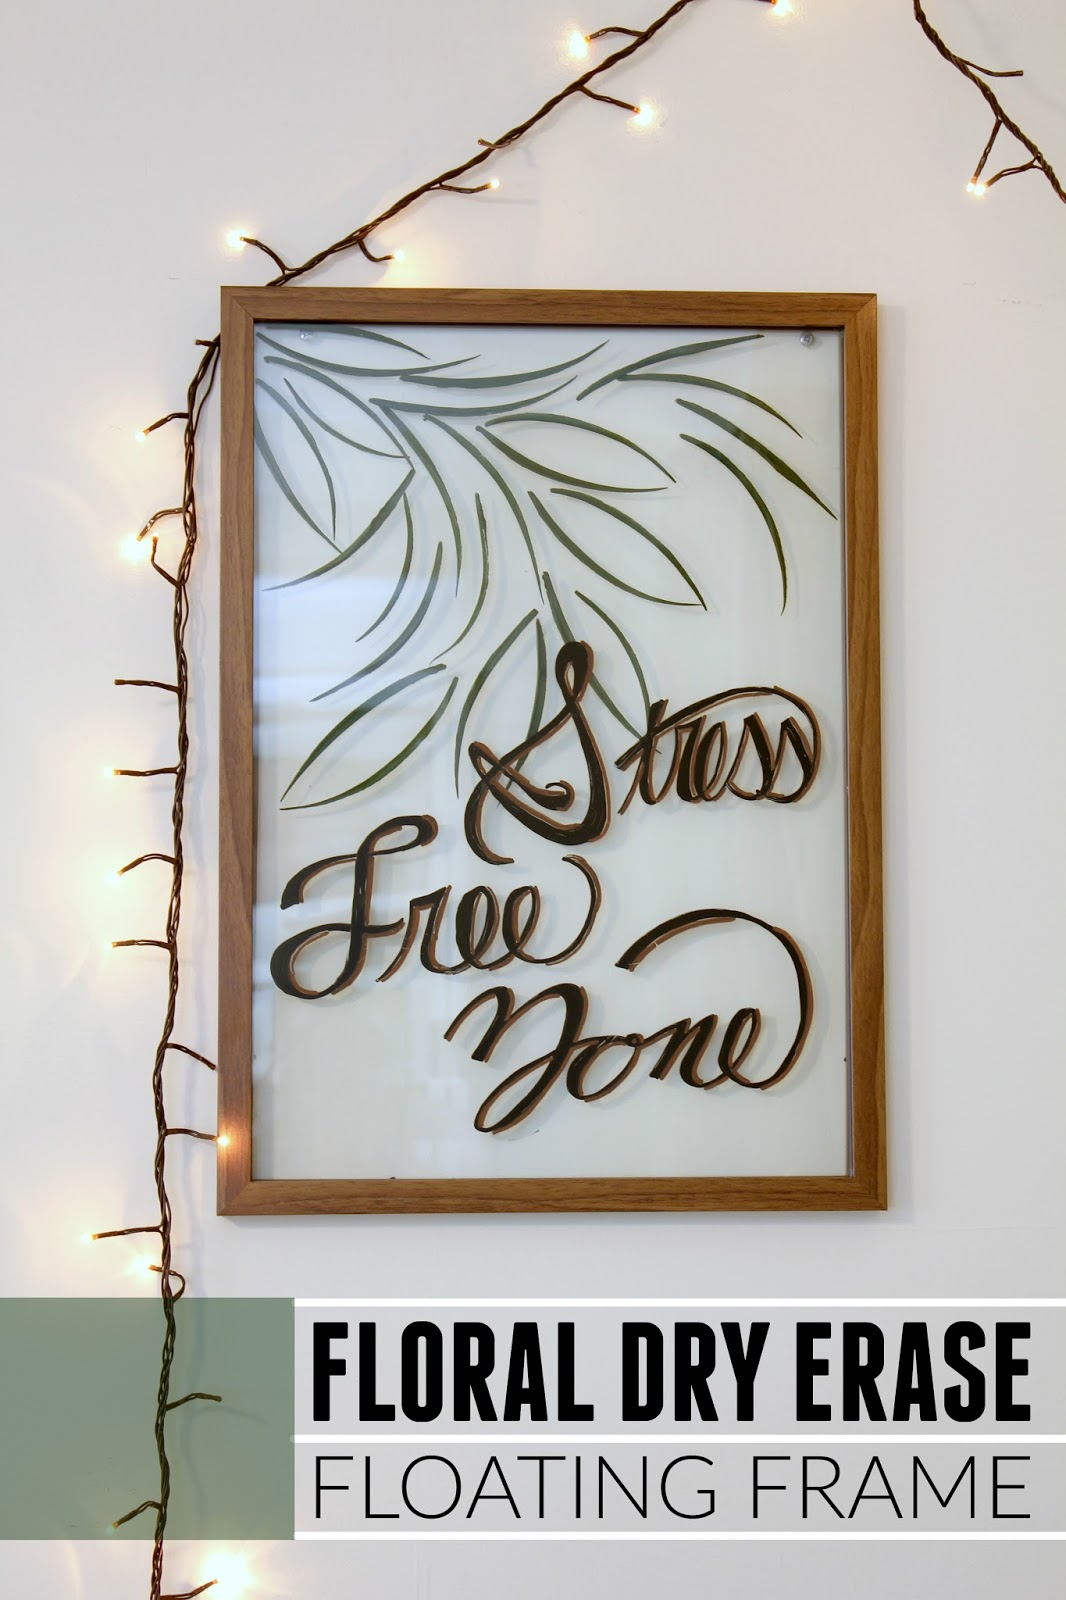 EAT+SLEEP+MAKE: #MichaelsMakers: Floral Dry Erase Floating Frame